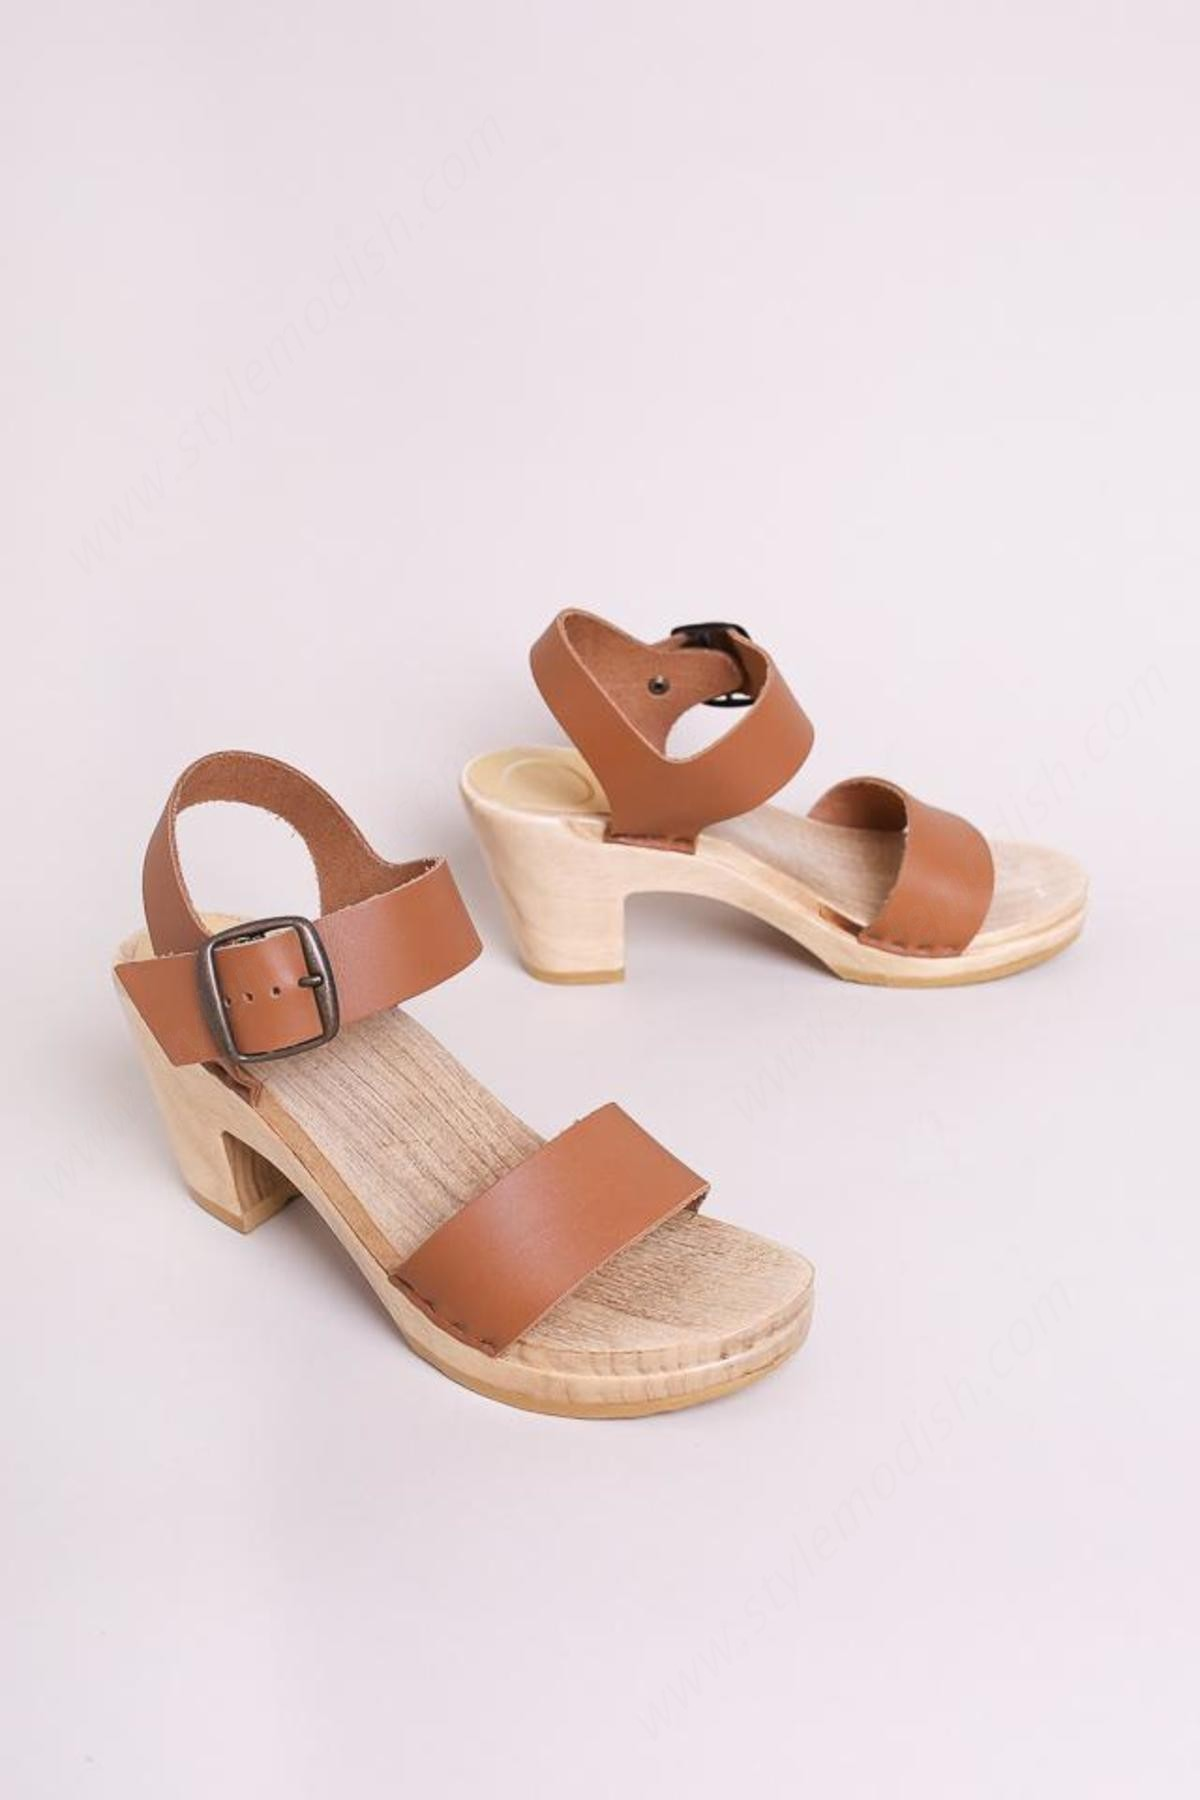 No.6 Women's No. Two Strap Clog Shoes - No.6 Women's No. Two Strap Clog Shoes